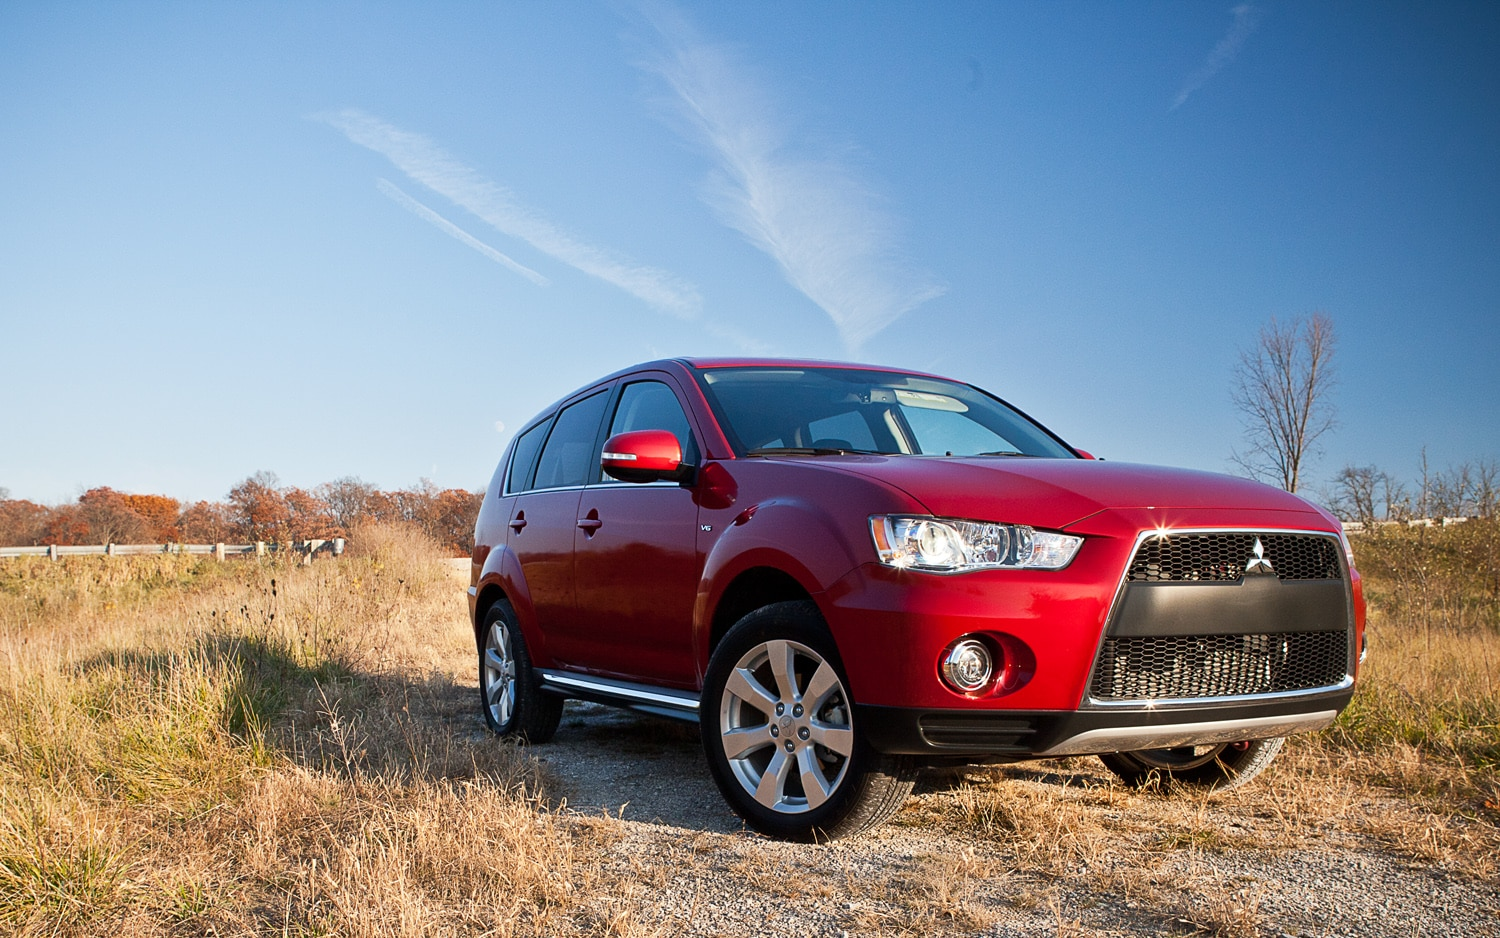 2012 mitsubishi outlander 3 0 gt s awc editors 39 notebook. Black Bedroom Furniture Sets. Home Design Ideas